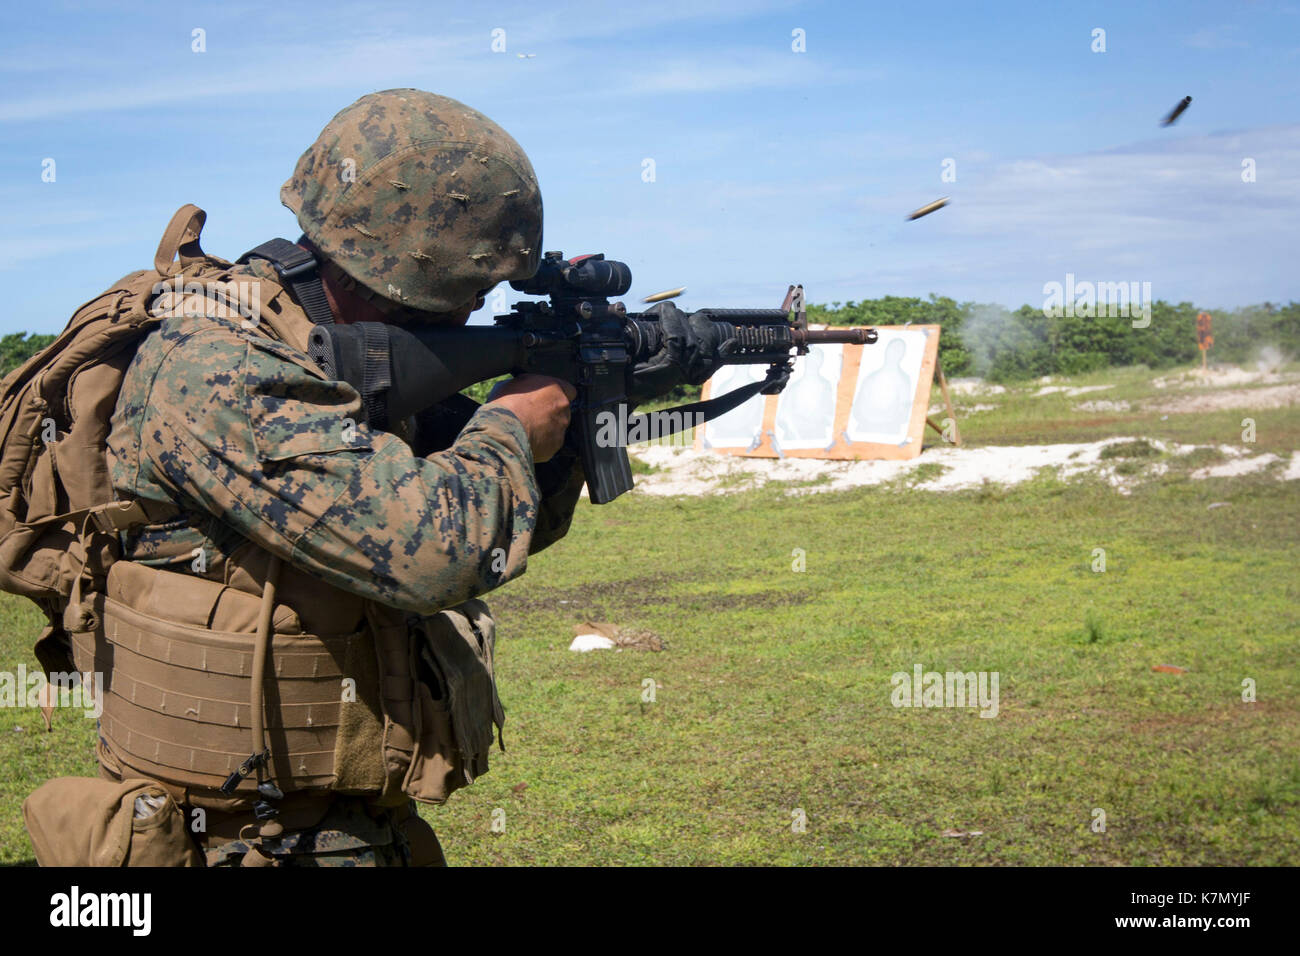 31st Marine Expeditionary Unit, fires an M16A4 service rifle Stock Photo